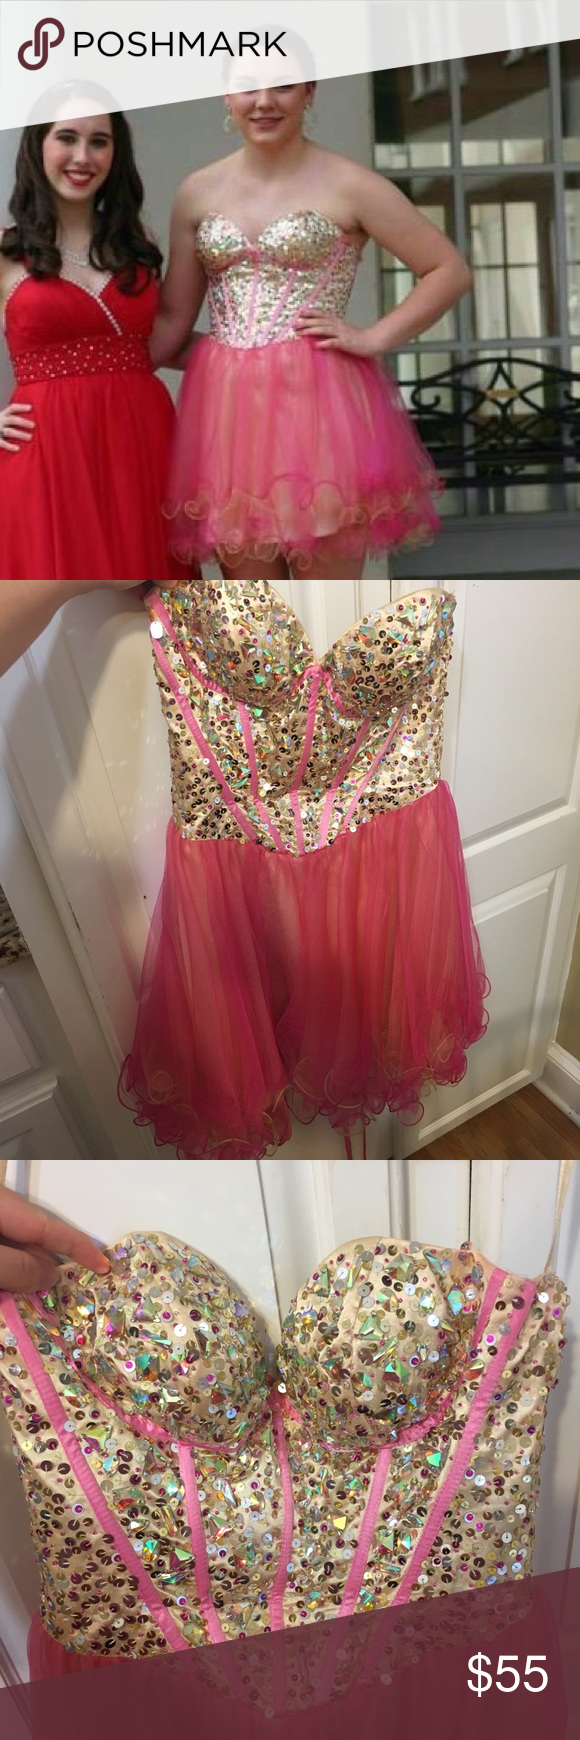 May Queen Short Prom Dress May Queen Short Prom Dress Size 6 Tan And Pink Worn A Couple Of Times I Purchased From A P Prom Dresses Dresses Short Prom Dress [ 1740 x 580 Pixel ]